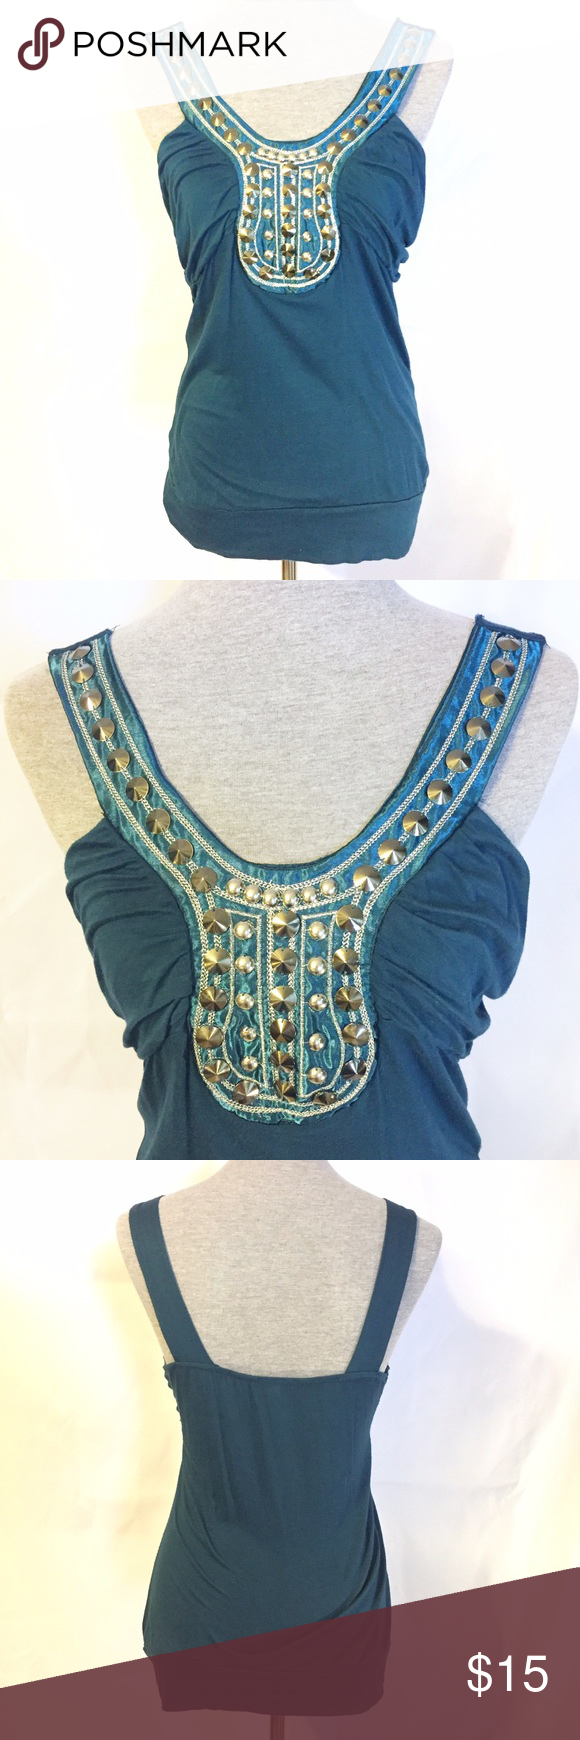 "Dark Teal Sleeveless Blouse Wet Seal Large Super fun embellished sleeveless blouse from Wet Seal! Beautiful gem toned turquoise color with silver stitching, beading and other embellishments. Love this top! There is a small hole in the waist band that I didn't even see until I was folding it up to put away after pictures. Very inconspicuous and not noticeable. 96% Rayon, 4% Spandex. 17"" Bust and 26"" Long laying flat. Size Large from Wet Seal Wet Seal Tops"